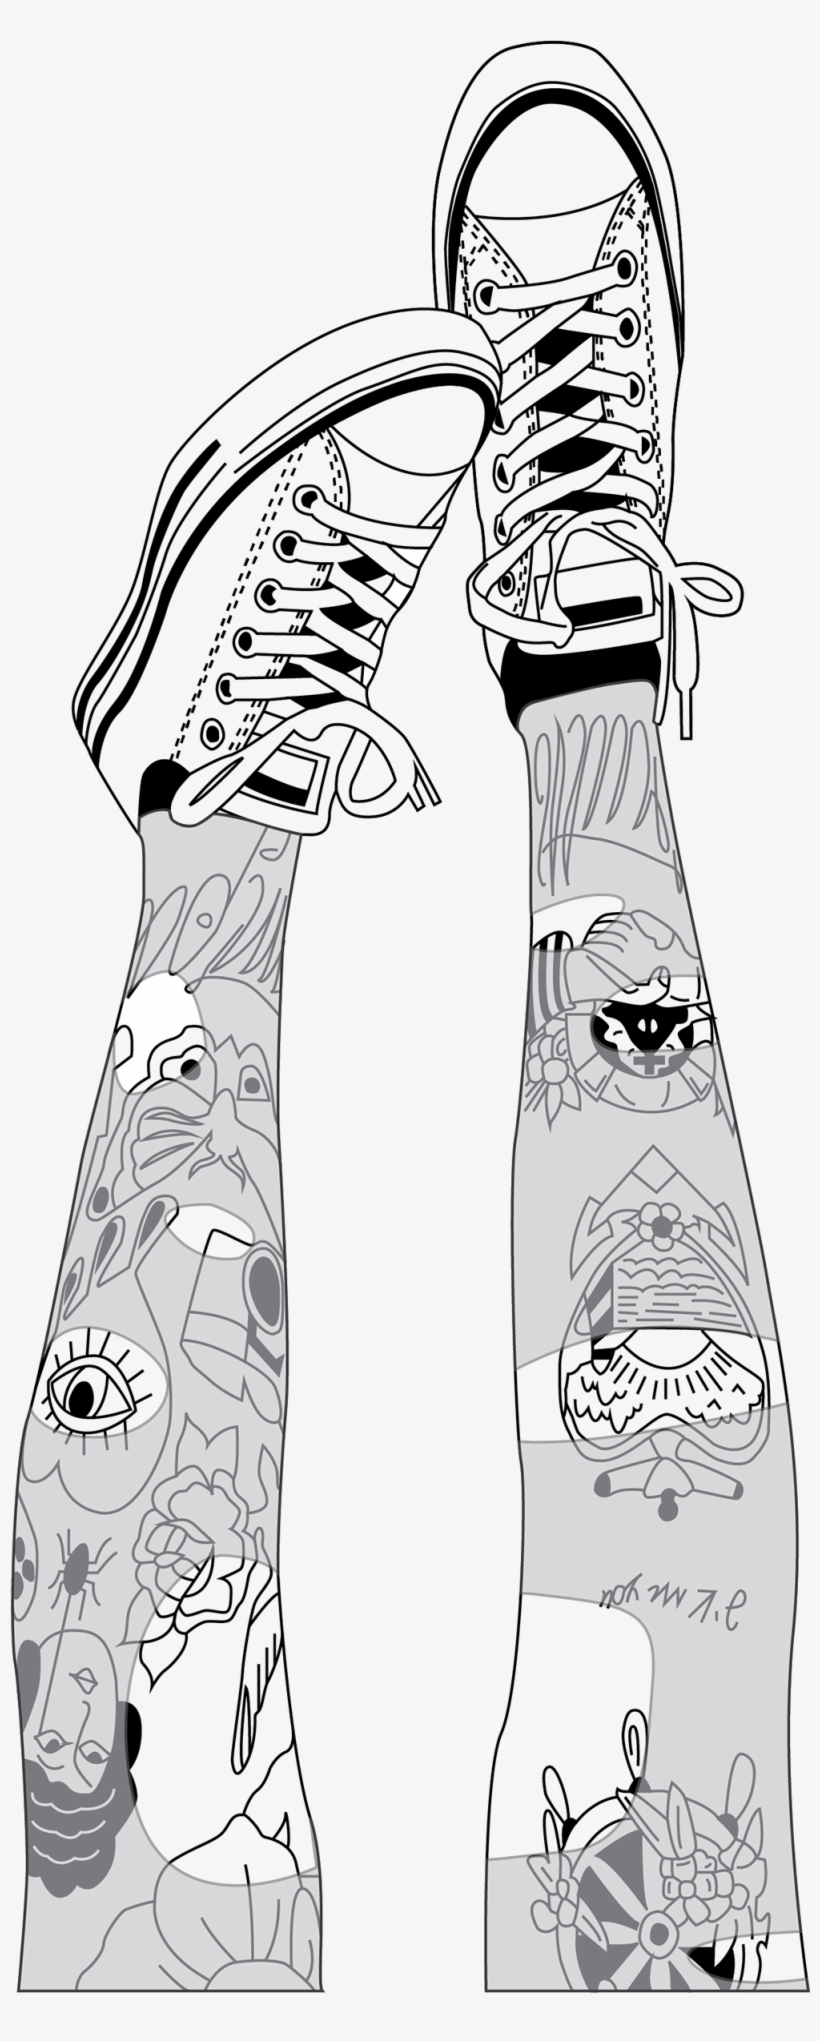 Outlines Pies Zapatillas Tumblr Dibujo Negro Hipster Drawing Png